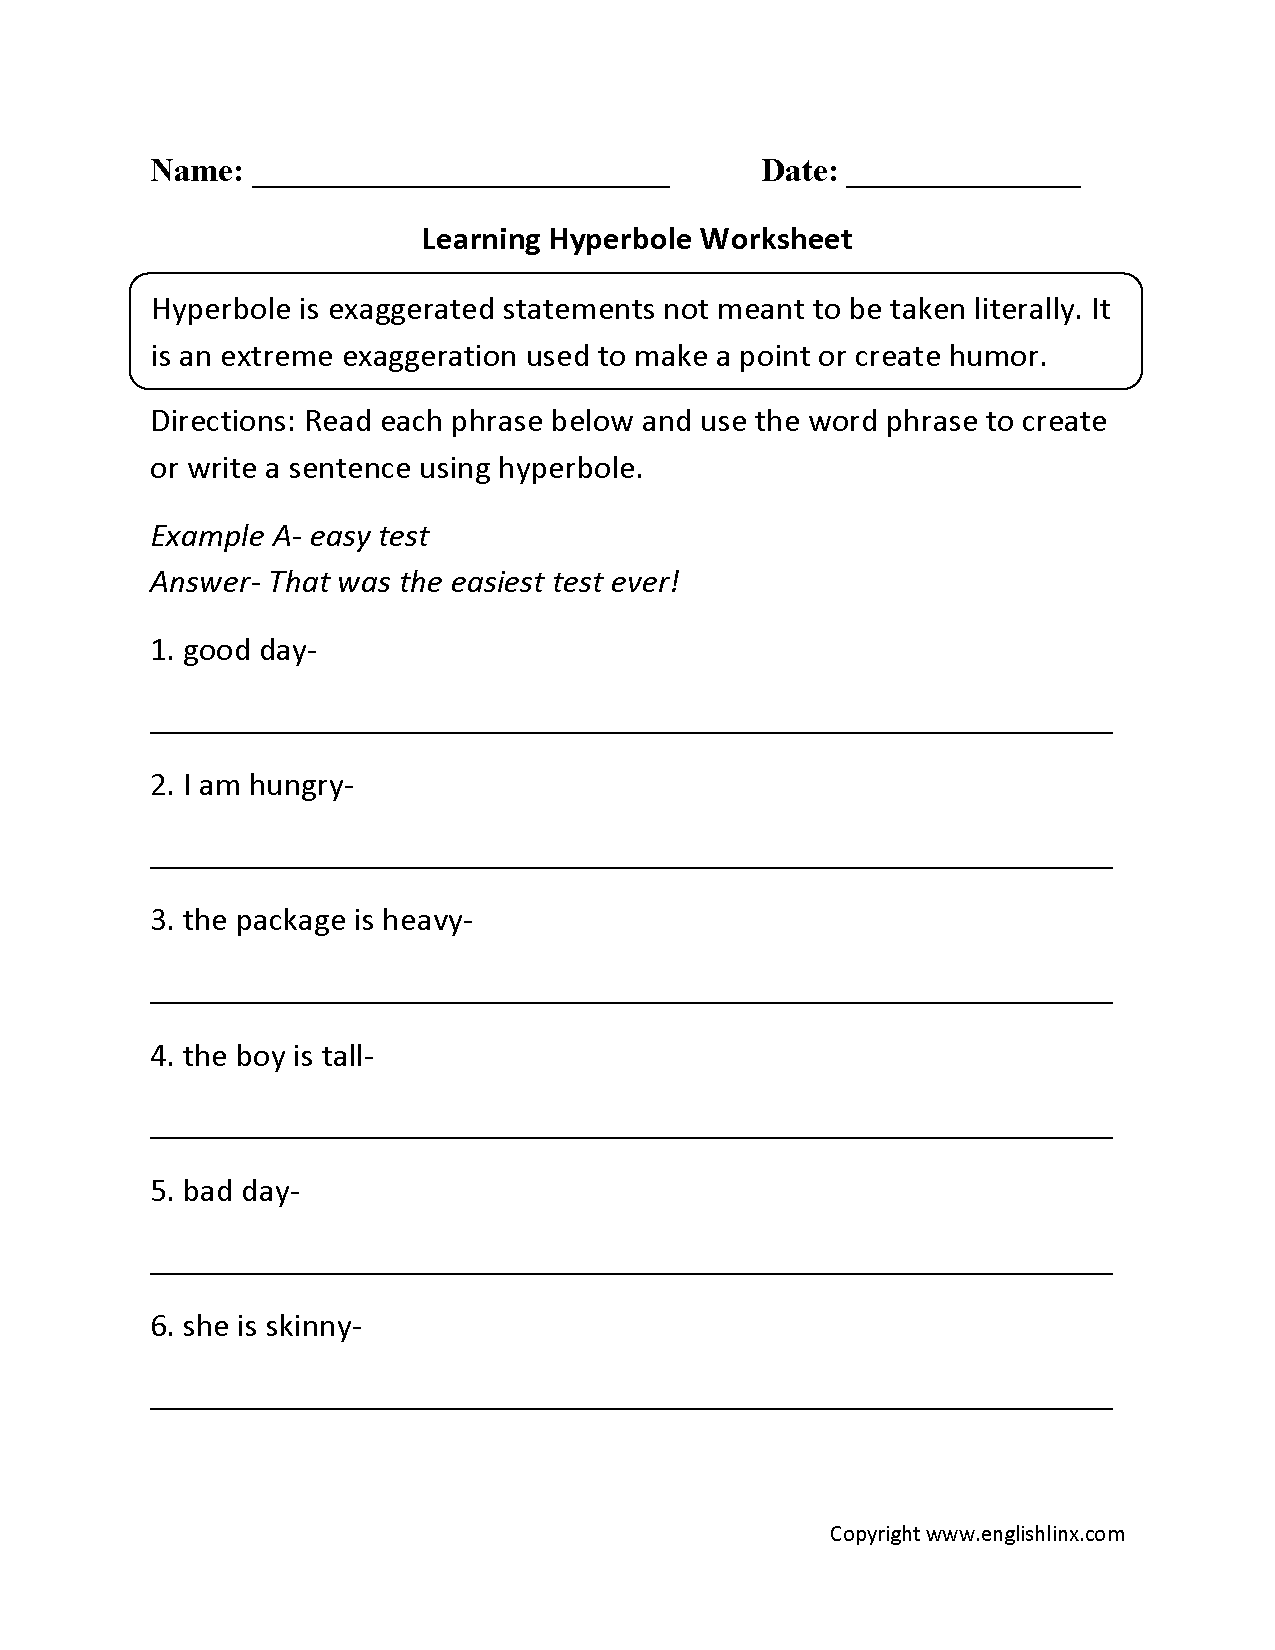 Worksheets Hyperbole Worksheets figurative language worksheets hyperbole worksheets